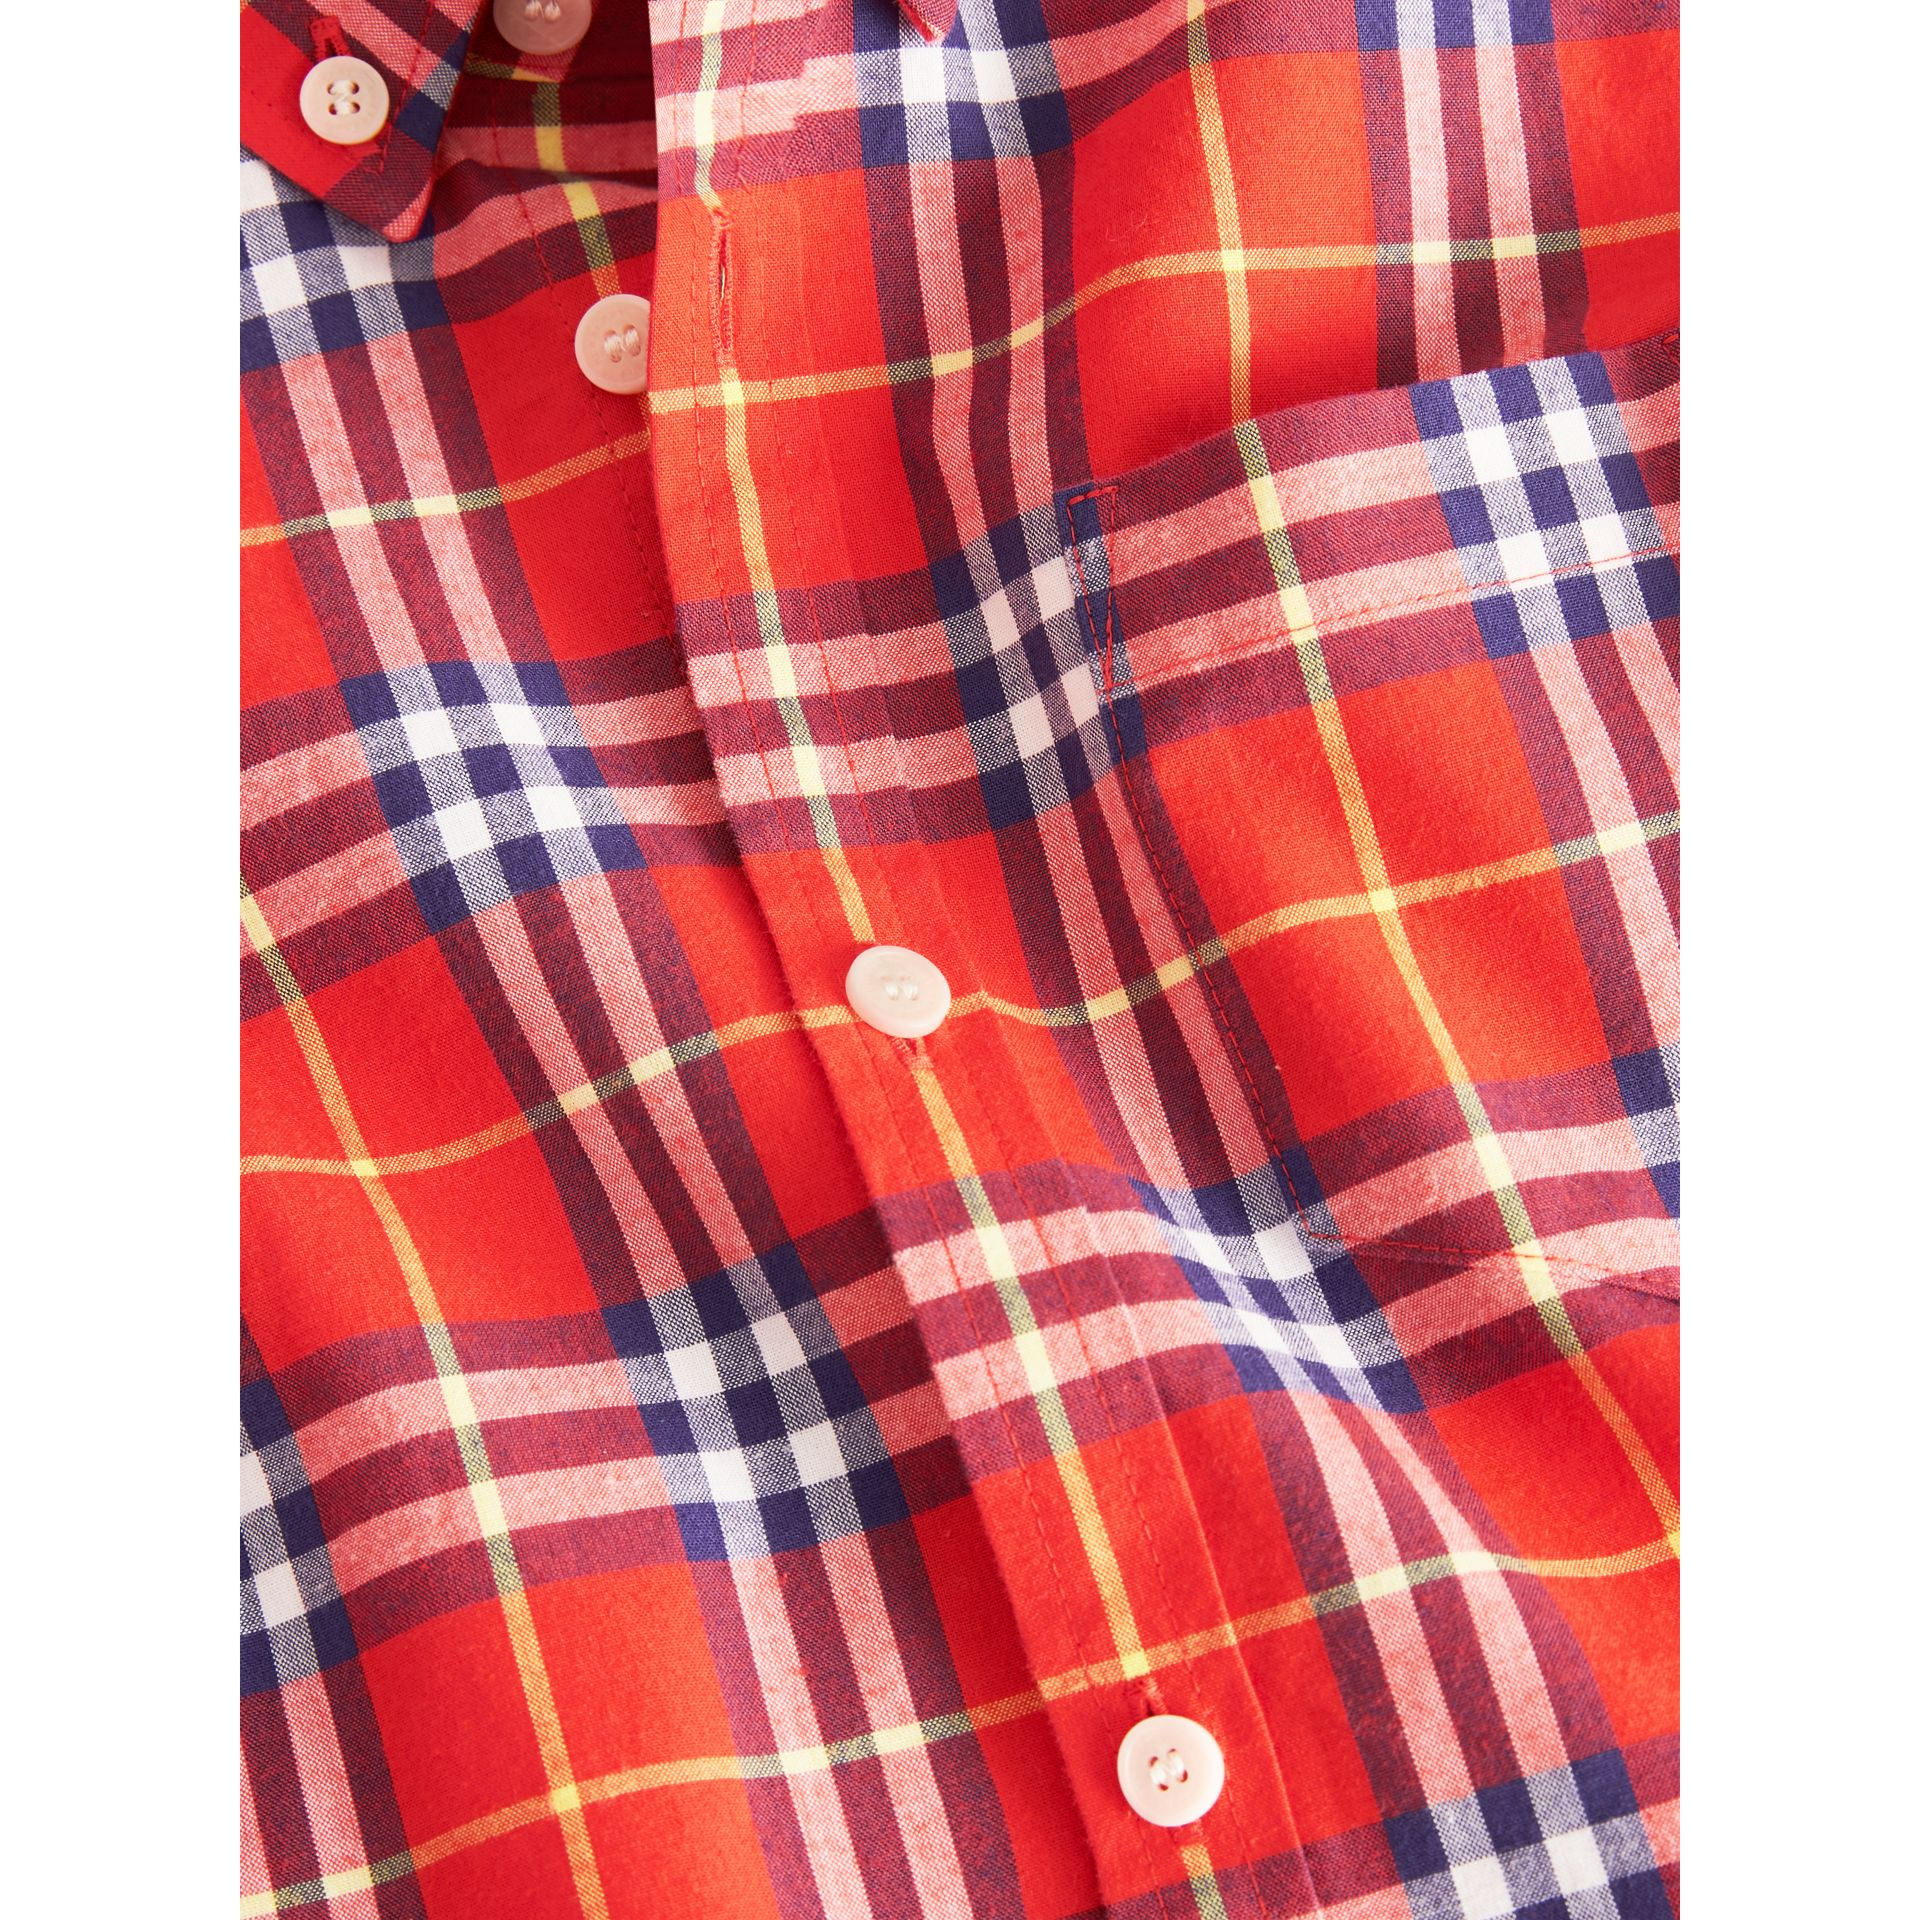 Button-down Collar Check Flannel Shirt in Orange Red | Burberry - gallery image 1